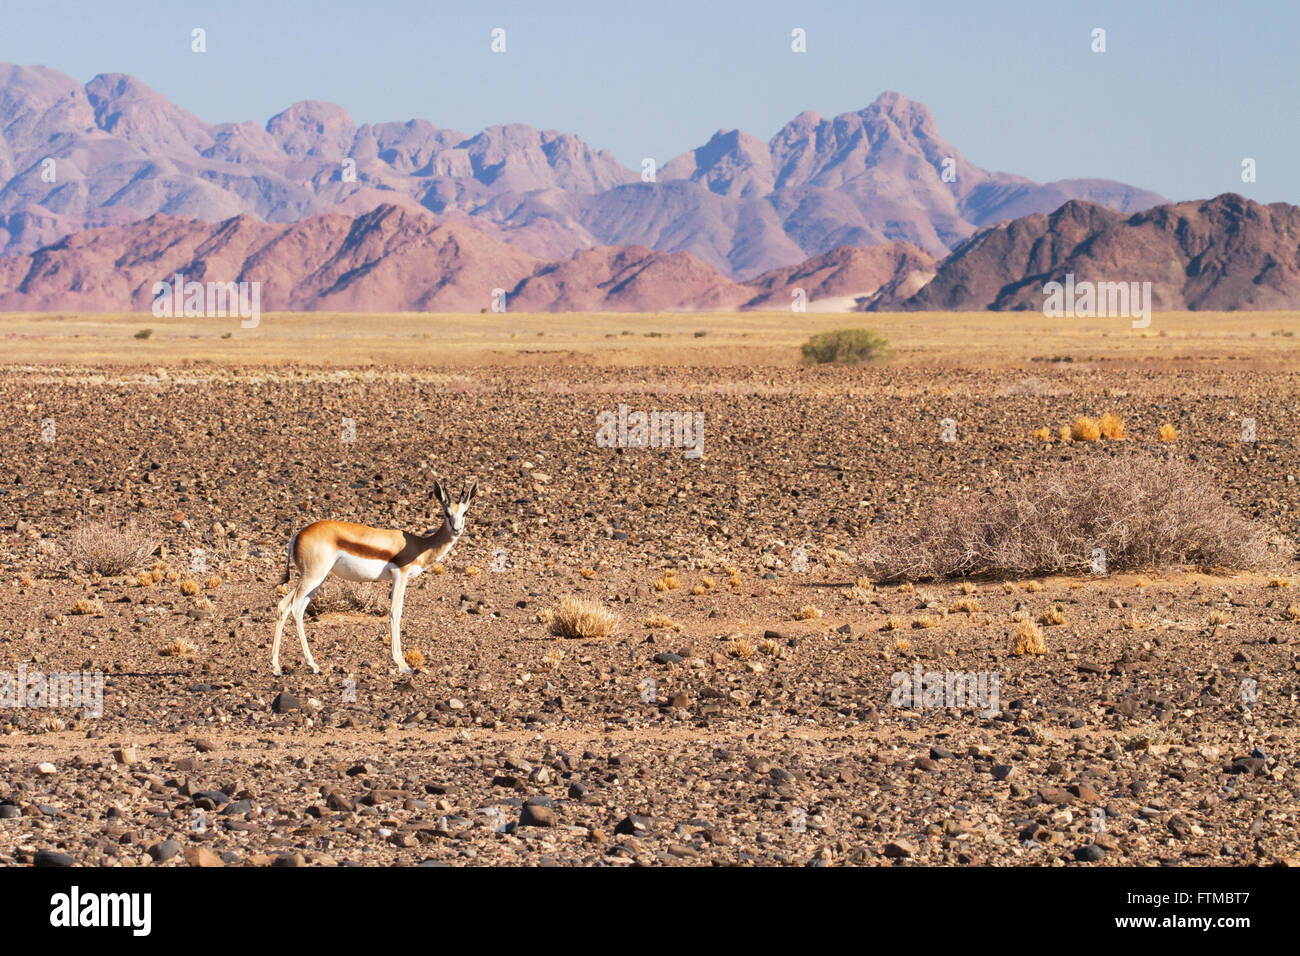 Loan springbok out in open arid environment with dramatic mountain range beyond in Namib-Naukluft National Park, - Stock Image